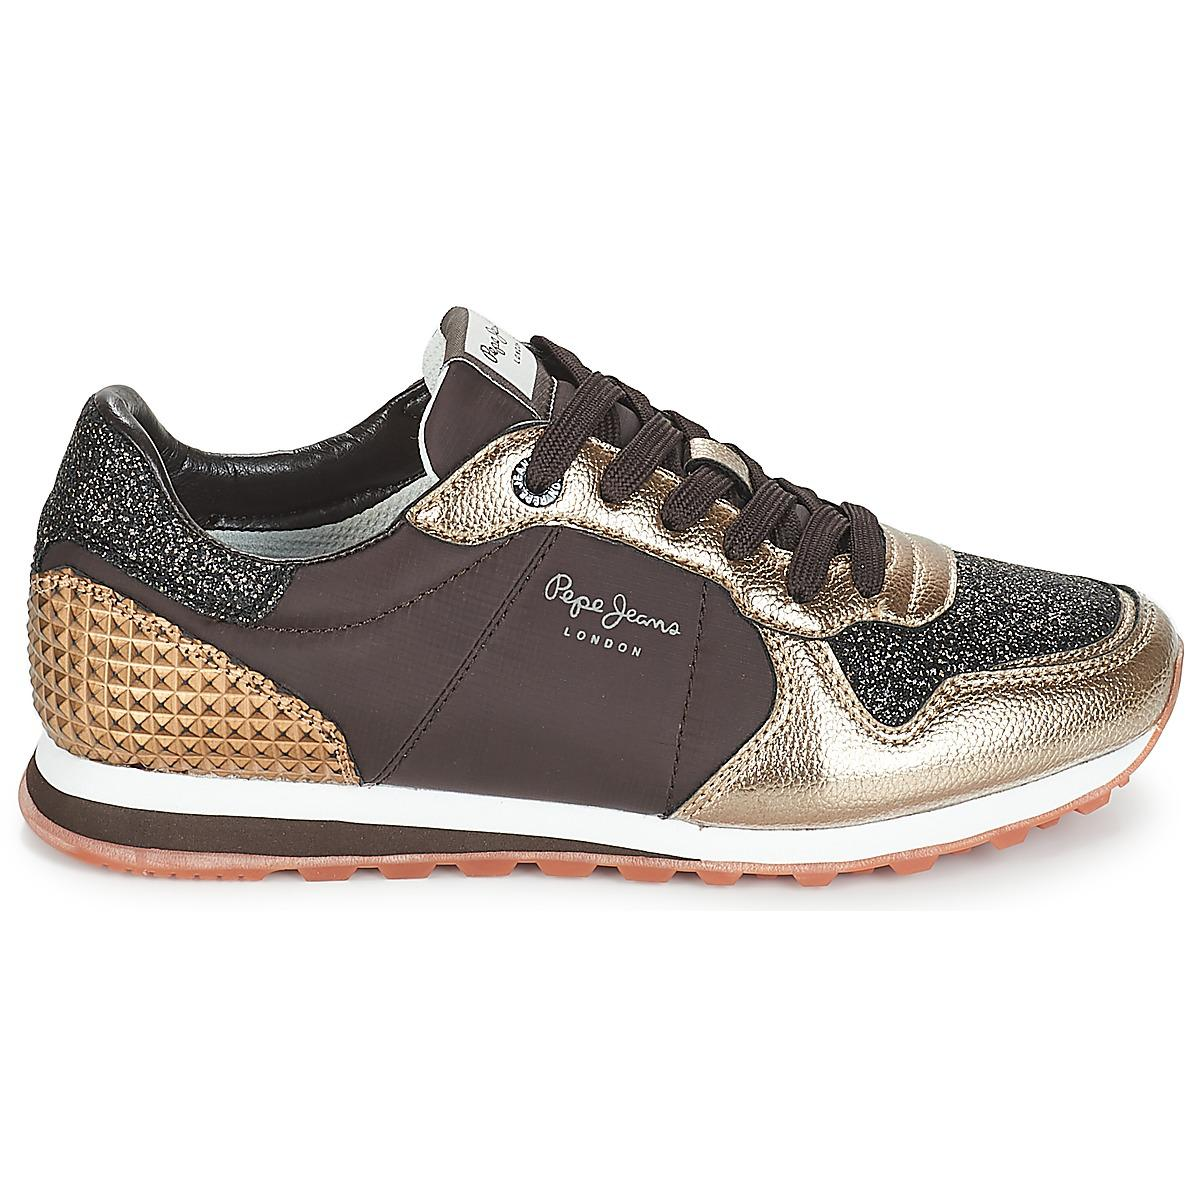 34270c041 pepe-jeans-brown-Verona-Womens-Shoes-trainers-In-Brown.jpeg